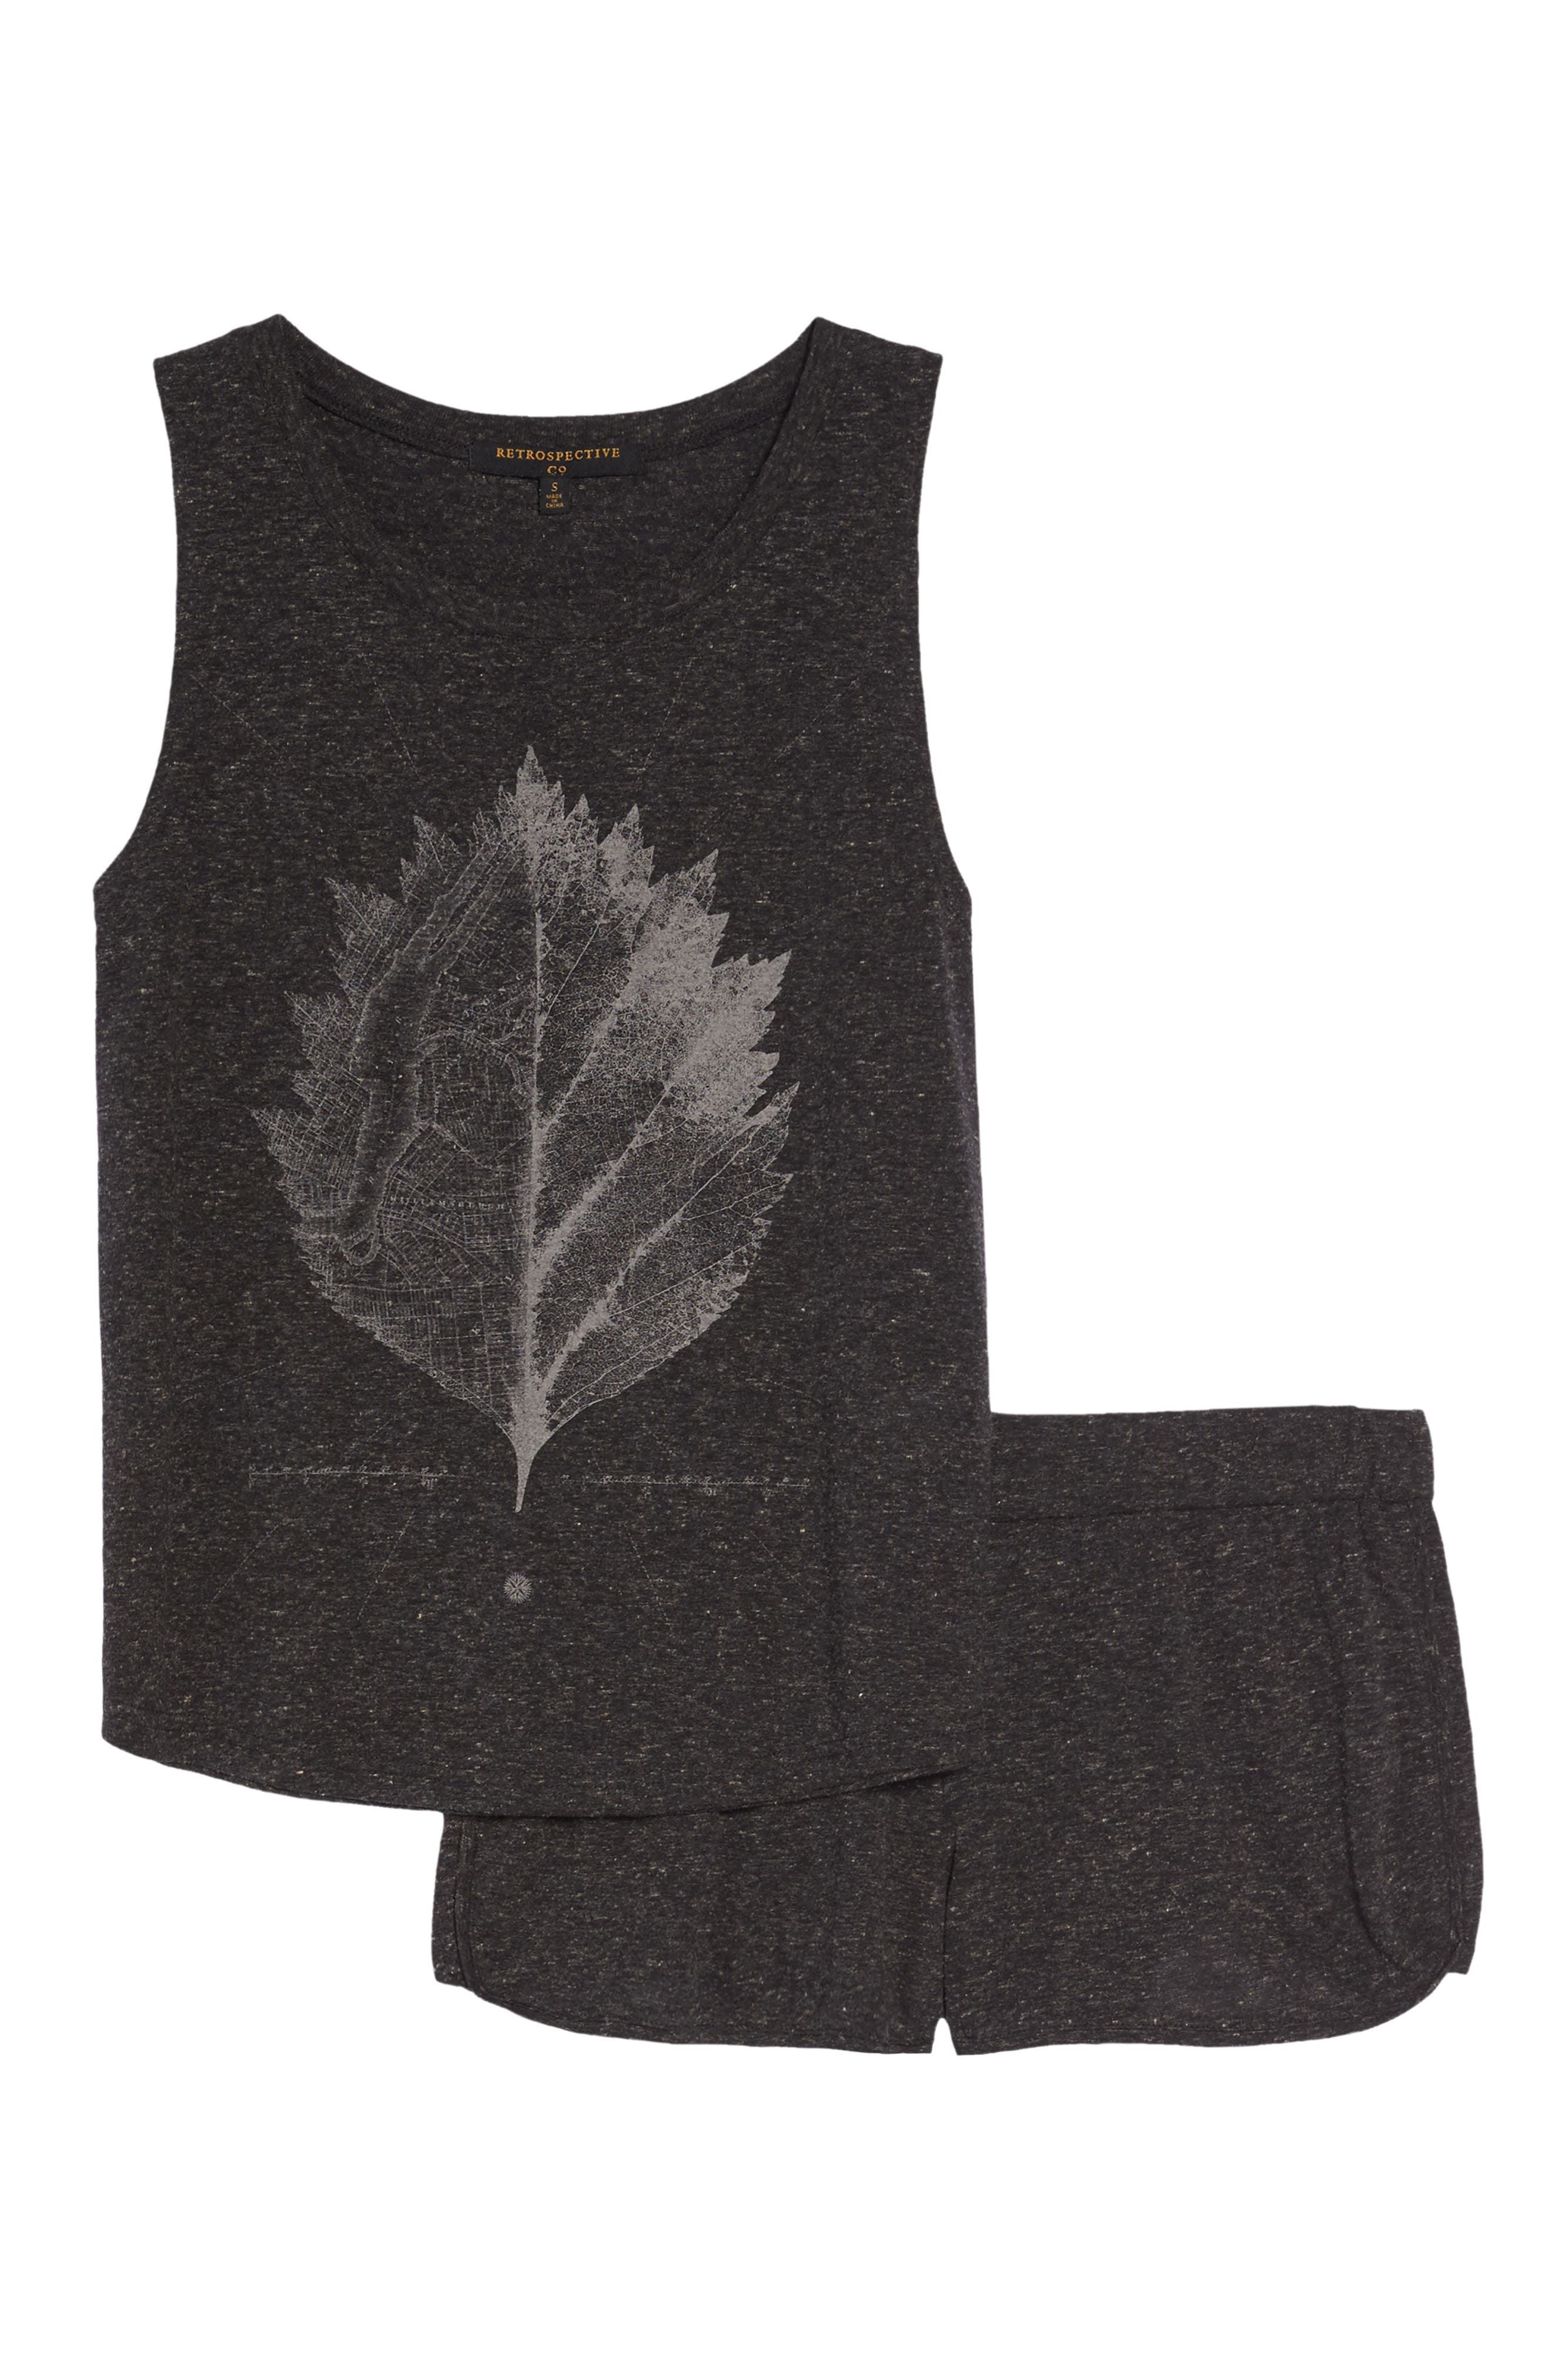 Muscle Tank & Shorts,                             Alternate thumbnail 4, color,                             Black Nyc Leaf Reflect